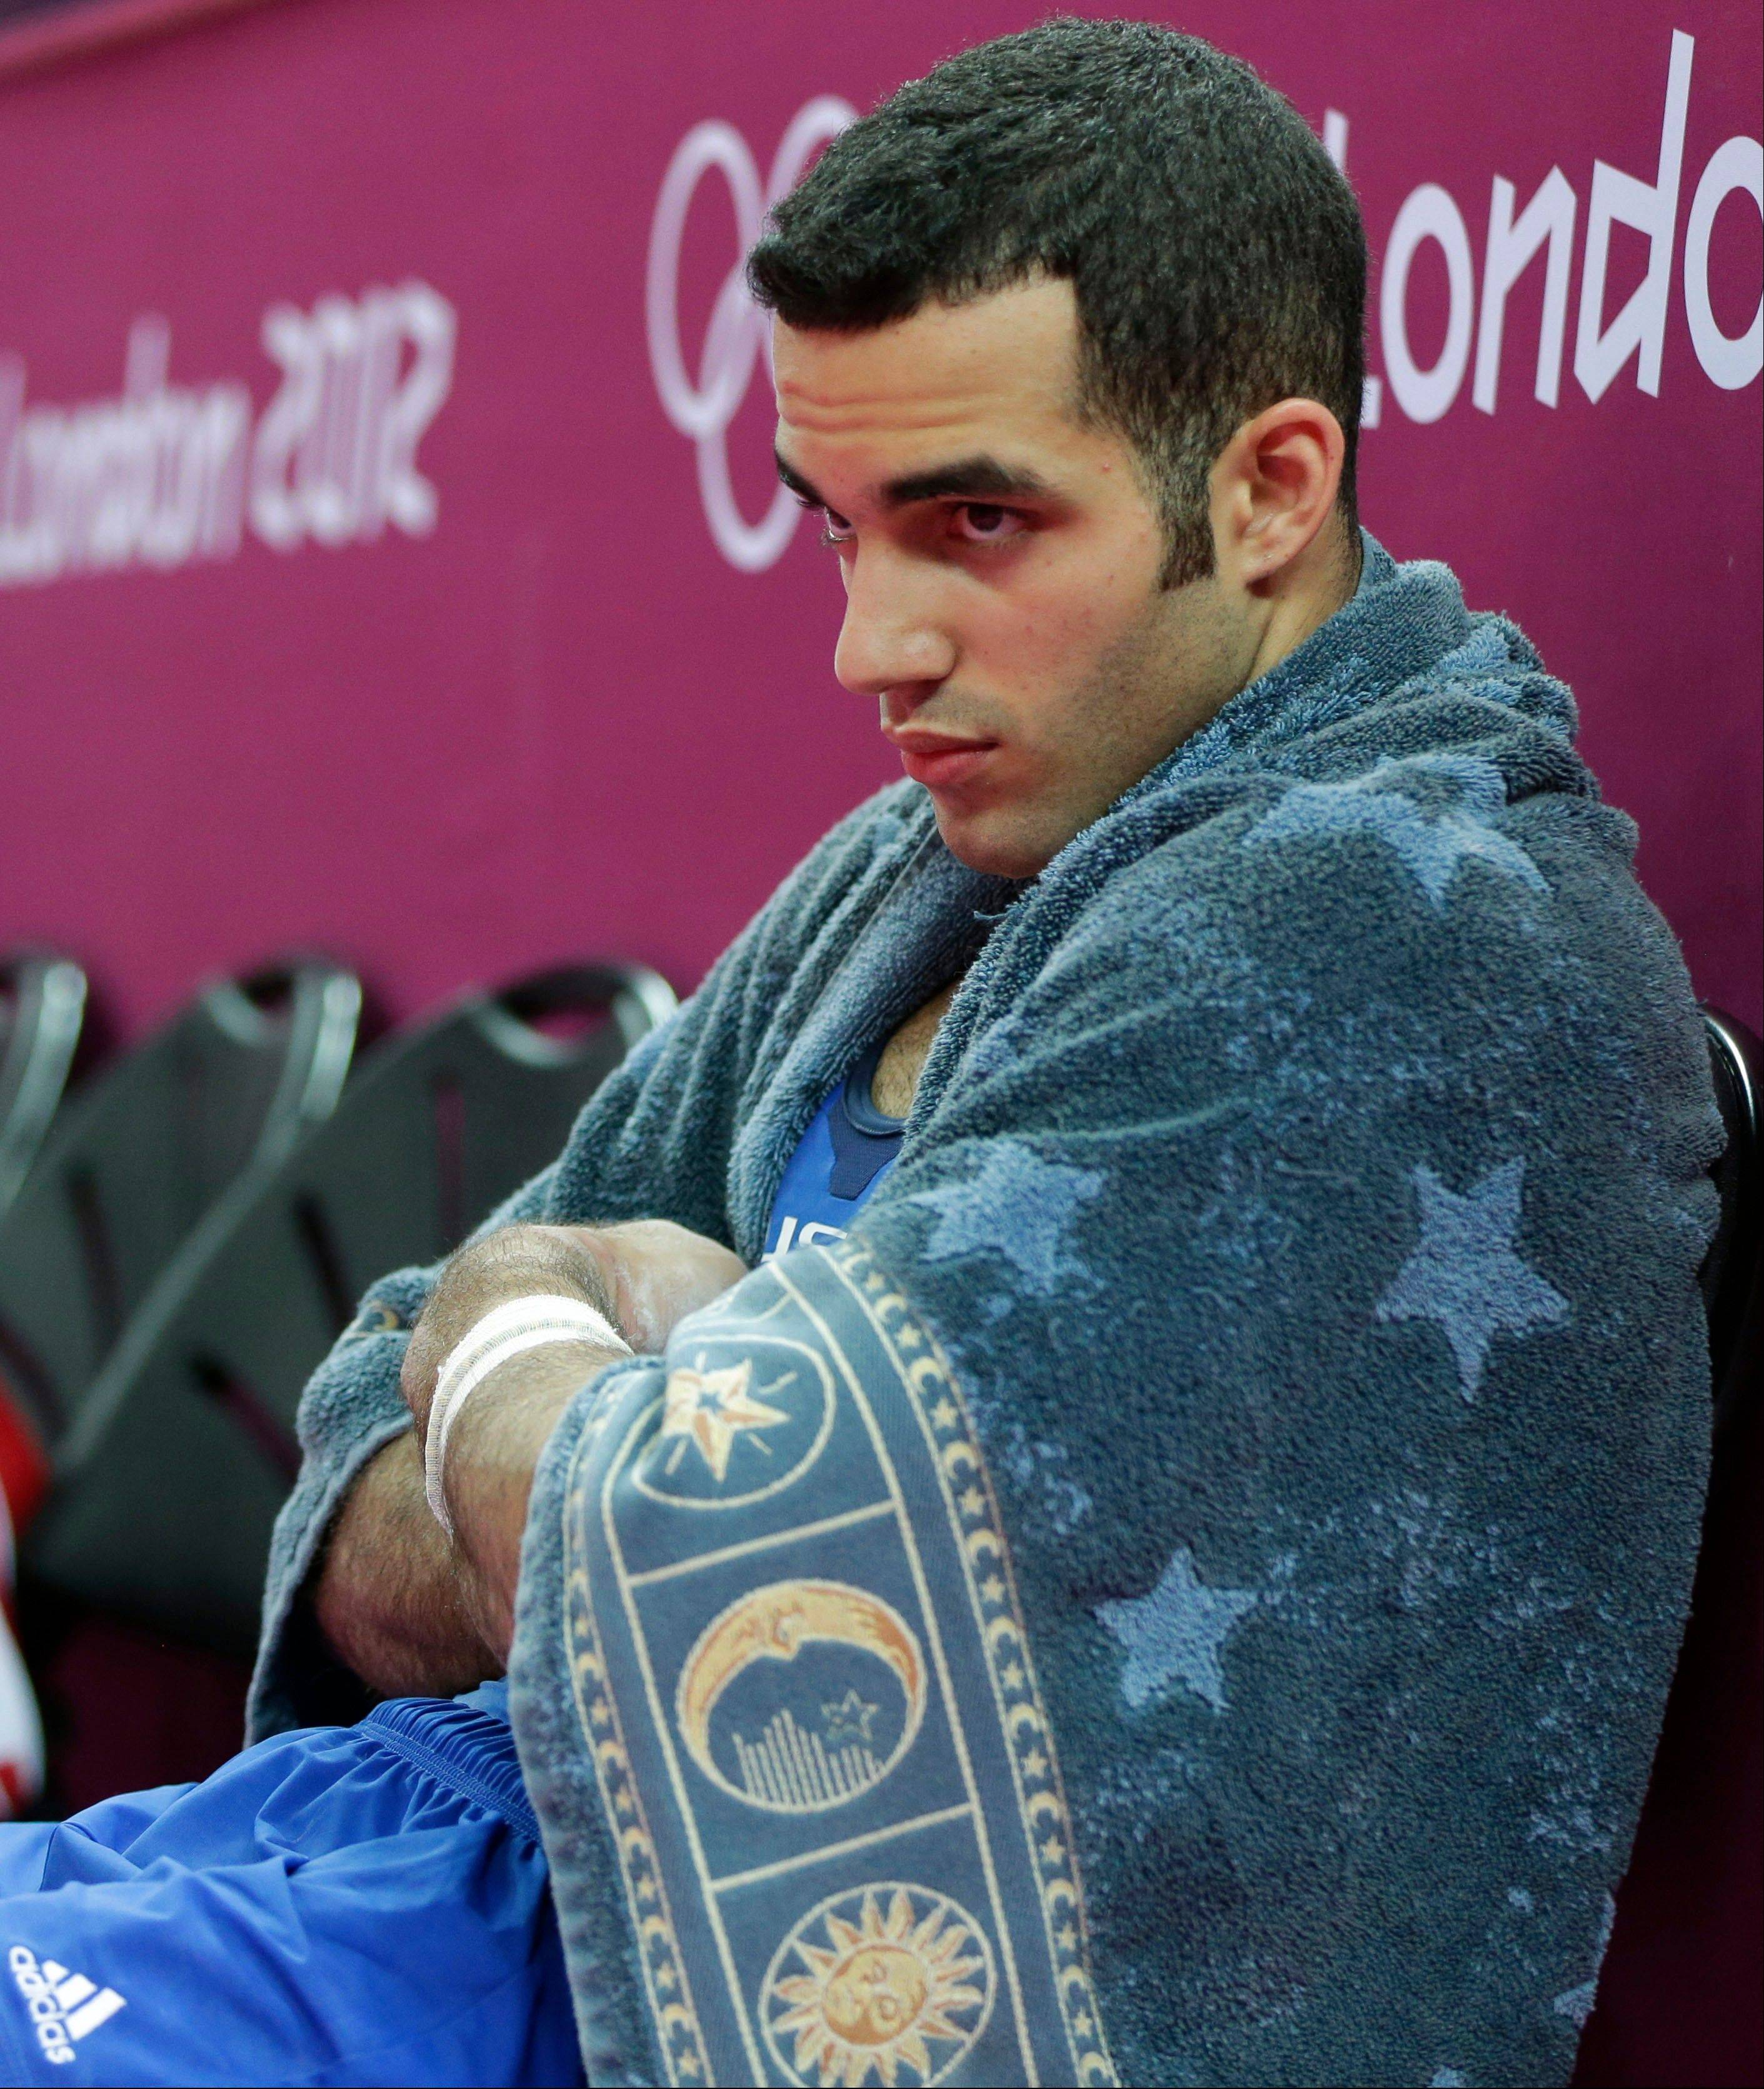 U.S. gymnast Danell Leyva sits dejected after a performance during the artistic gymnastics men's individual all-around competition at the 2012 Summer Olympics.